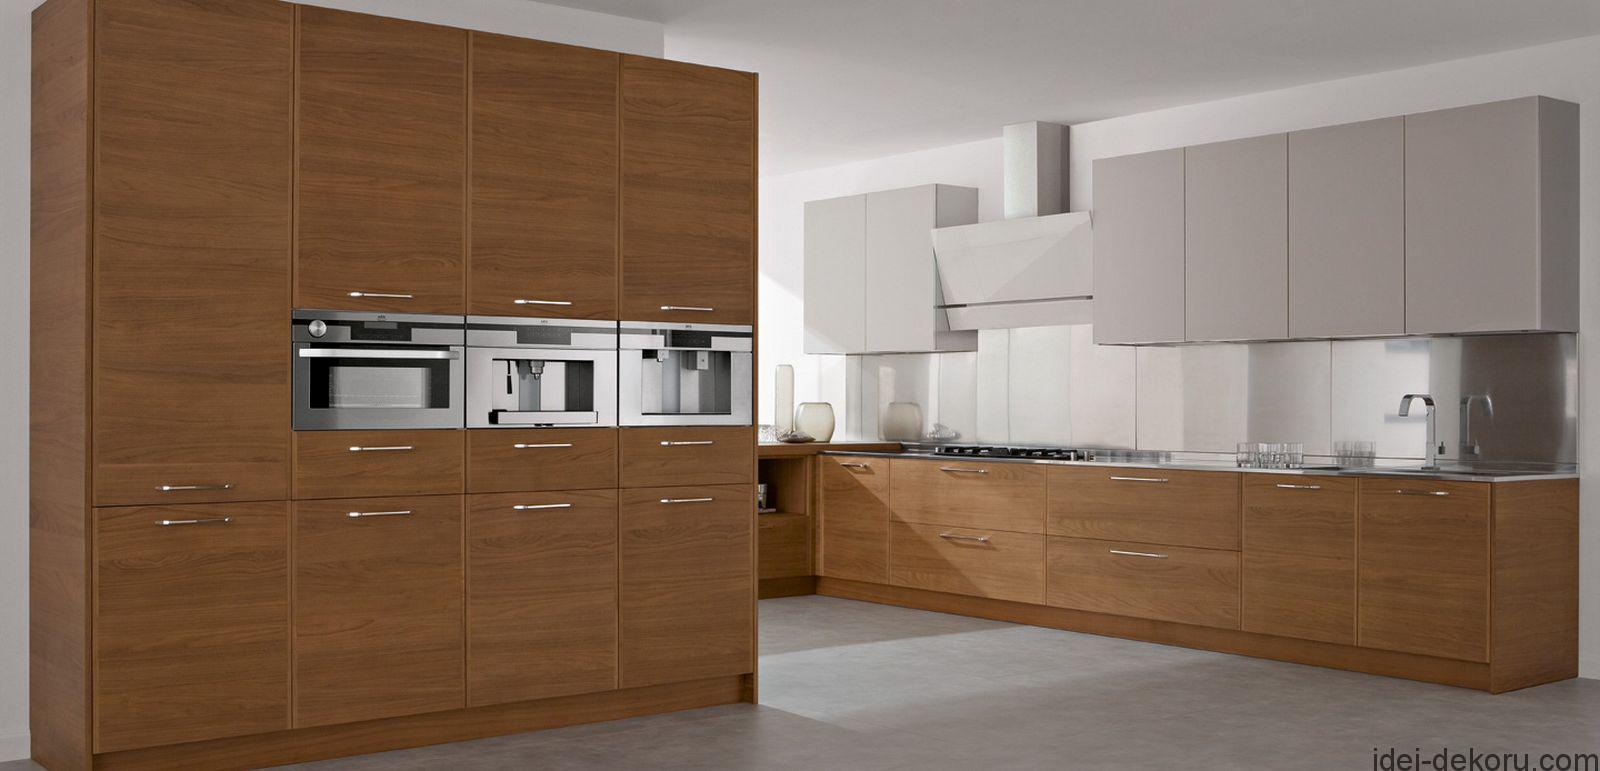 Modern-Wood-Kitchen-Cabinets